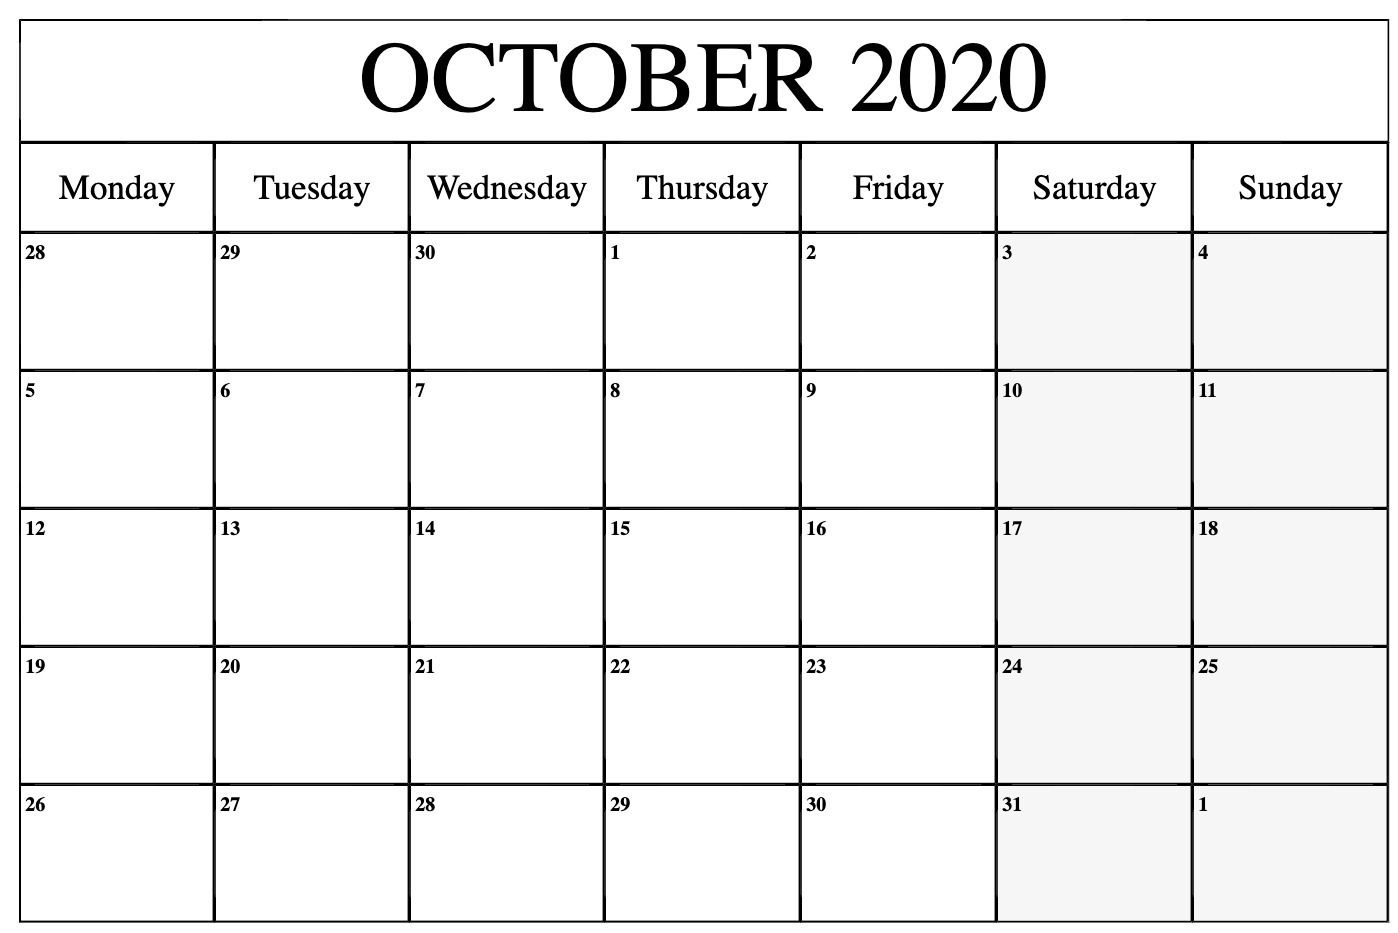 October 2020 Calendar Template Excel